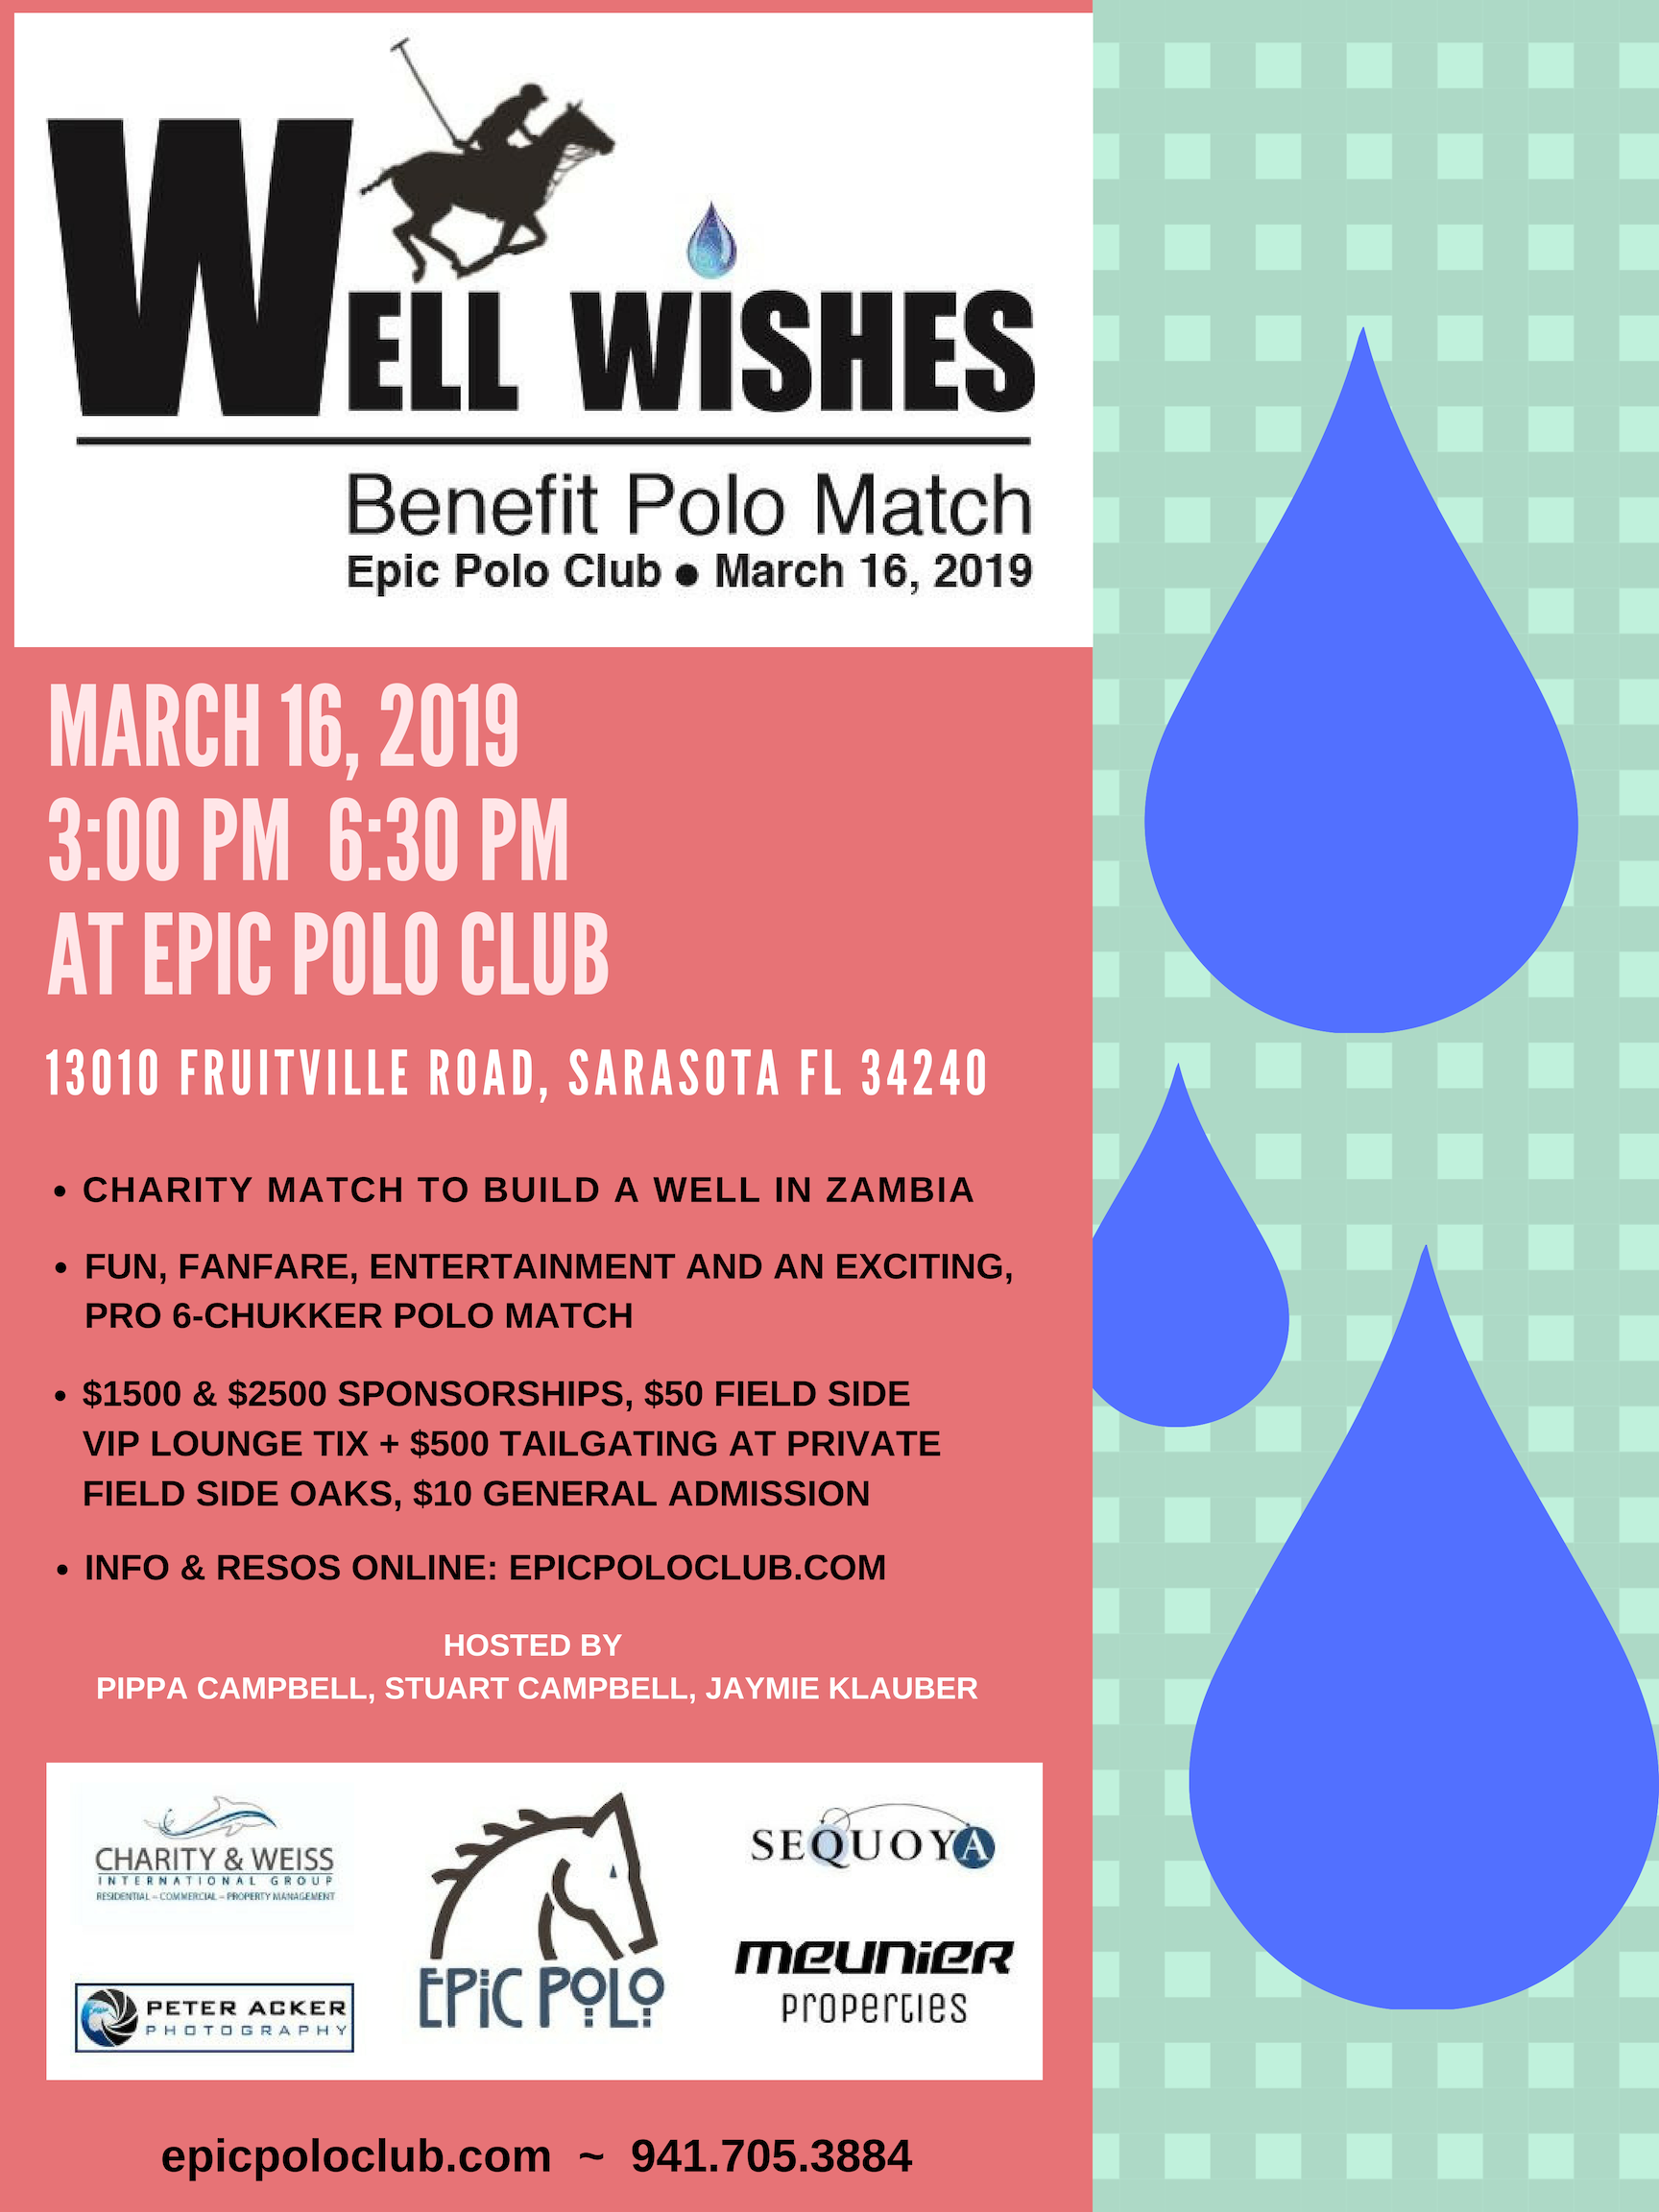 Well Wishes Polo Match Flyer 3.16.19.png